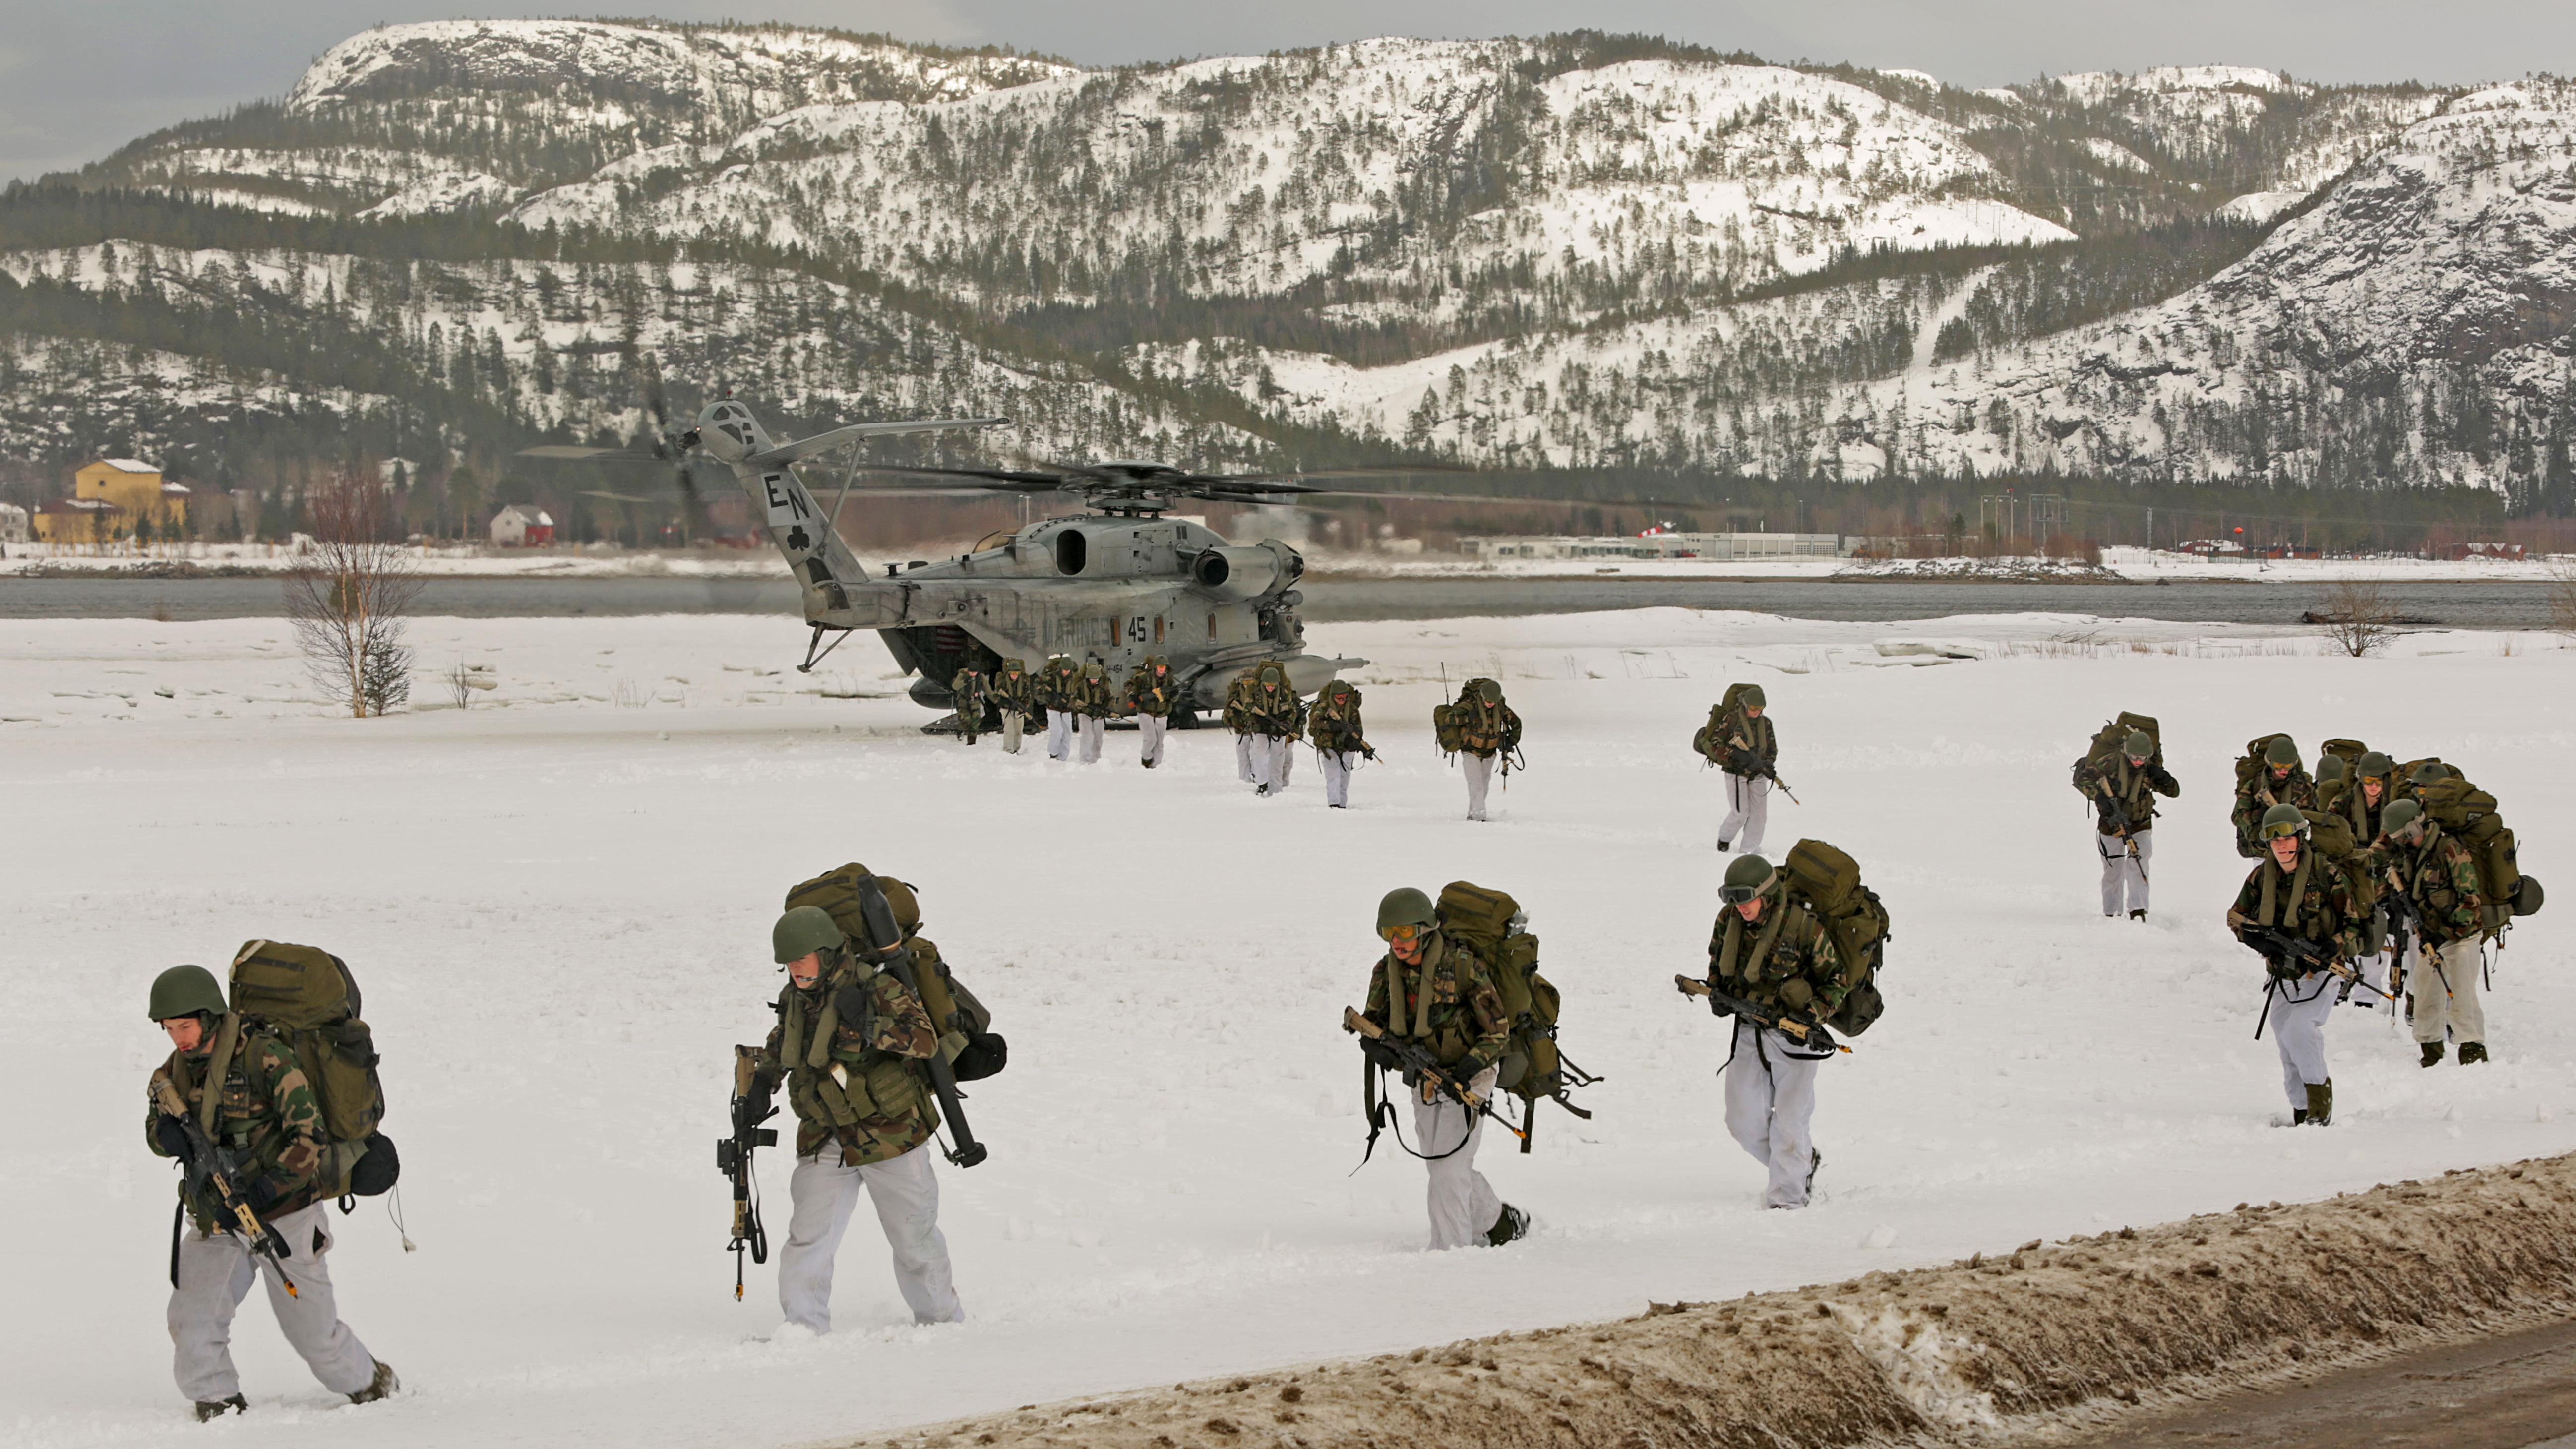 Some 330 U.S. Marines to be temporarily stationed in Norway in 2017